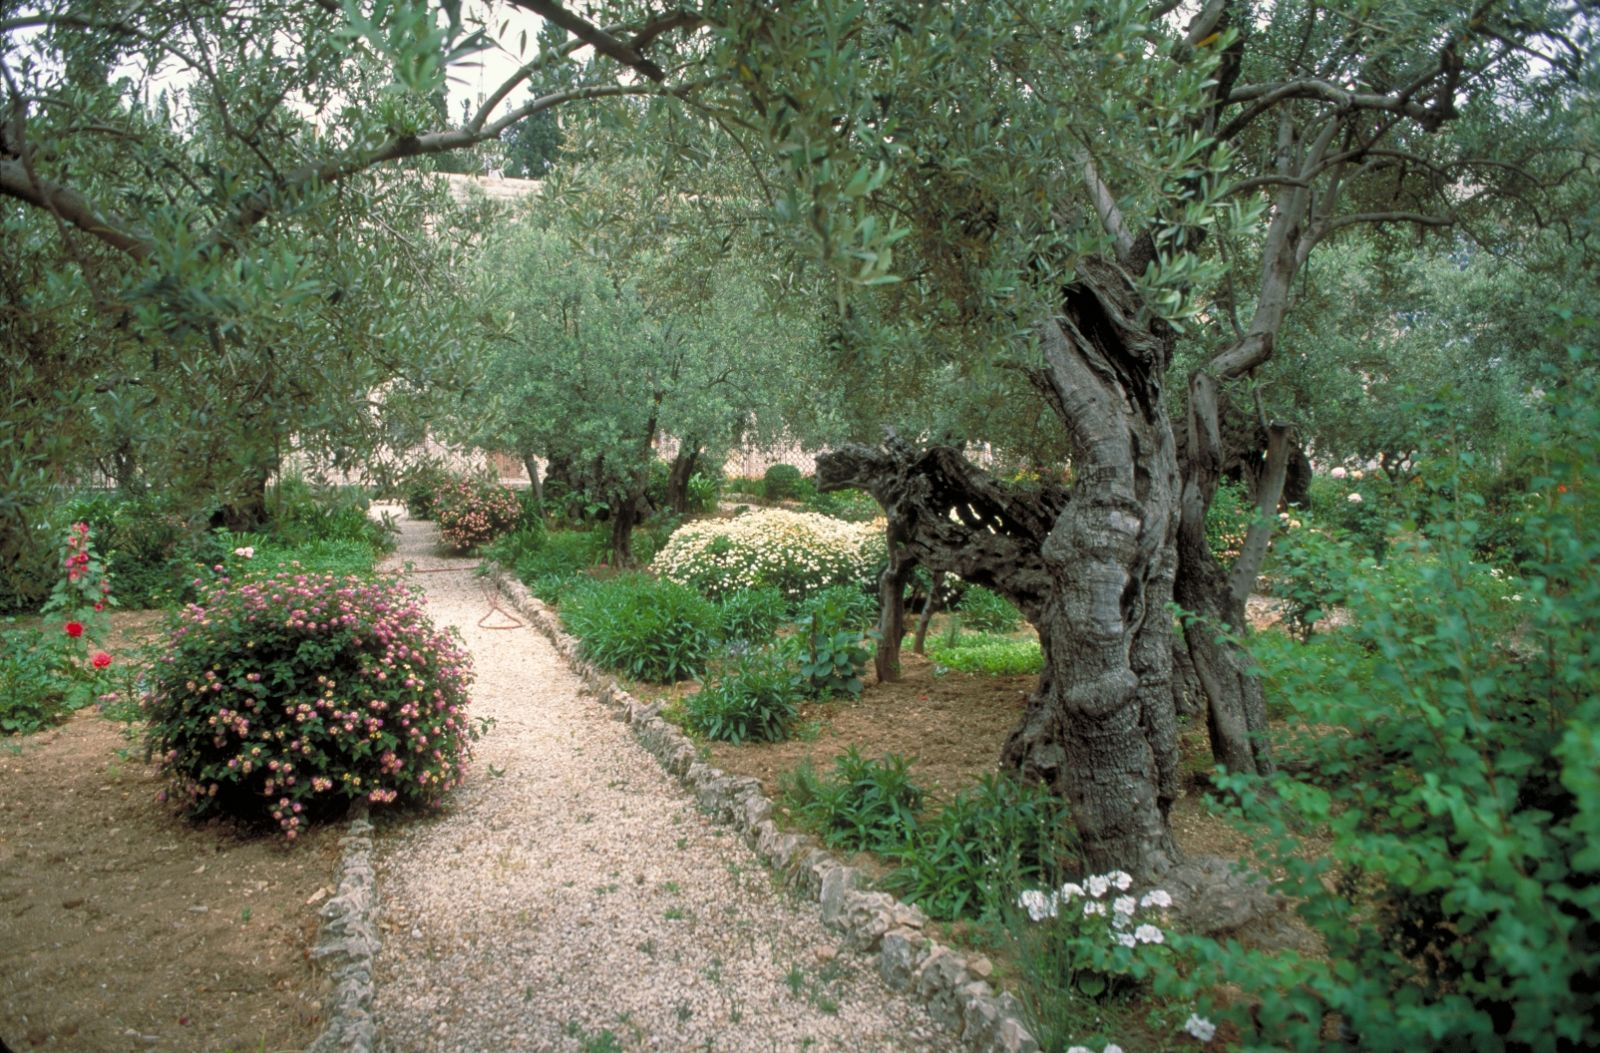 Ancient olive trees in the Garden of Gethsemane. Photo courtesy of Israel Tourism Ministry